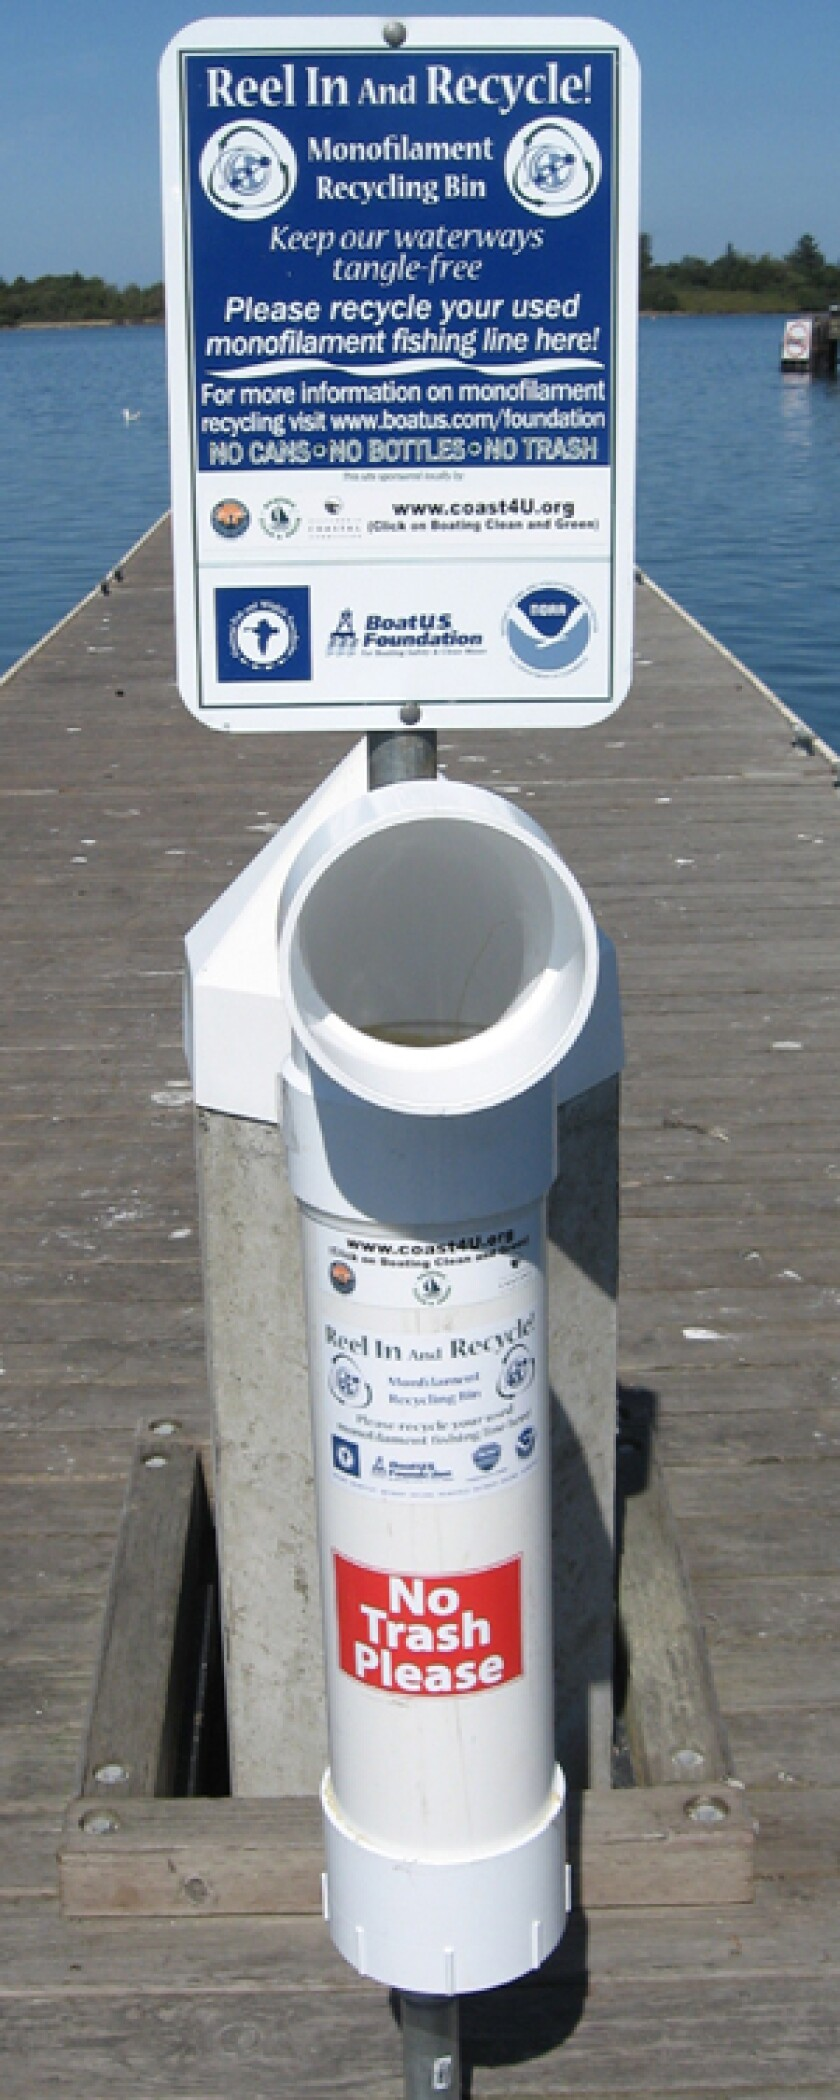 Michael Tesis and the UCSD Triton Lobby Corps want to place bins like this at Black's Beach to recycle fishing line.